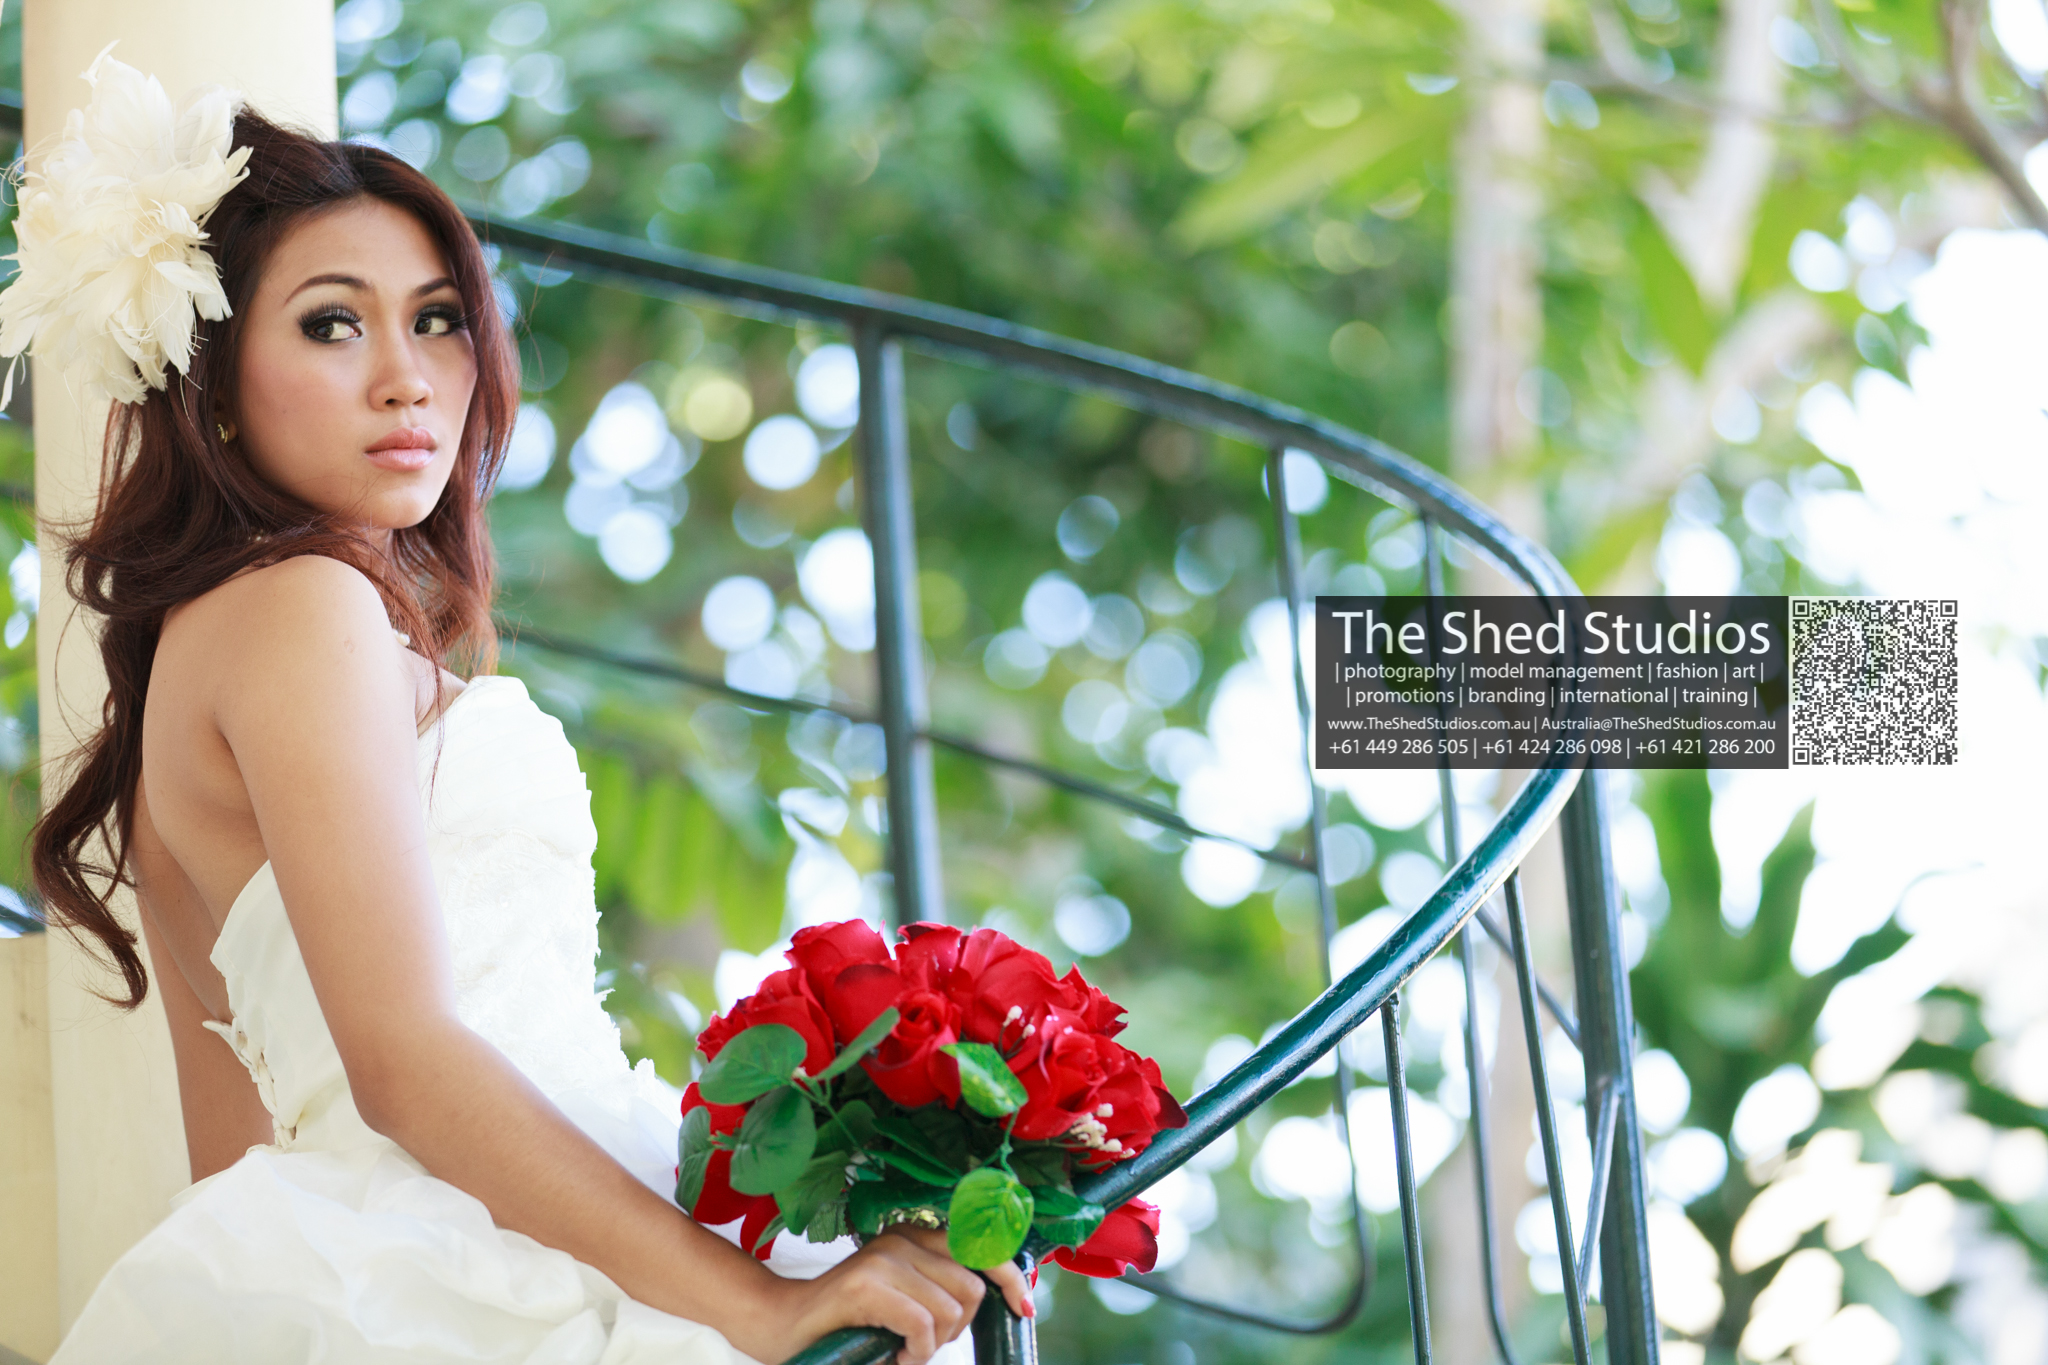 Photography by BK @ The Shed Studios.com.au